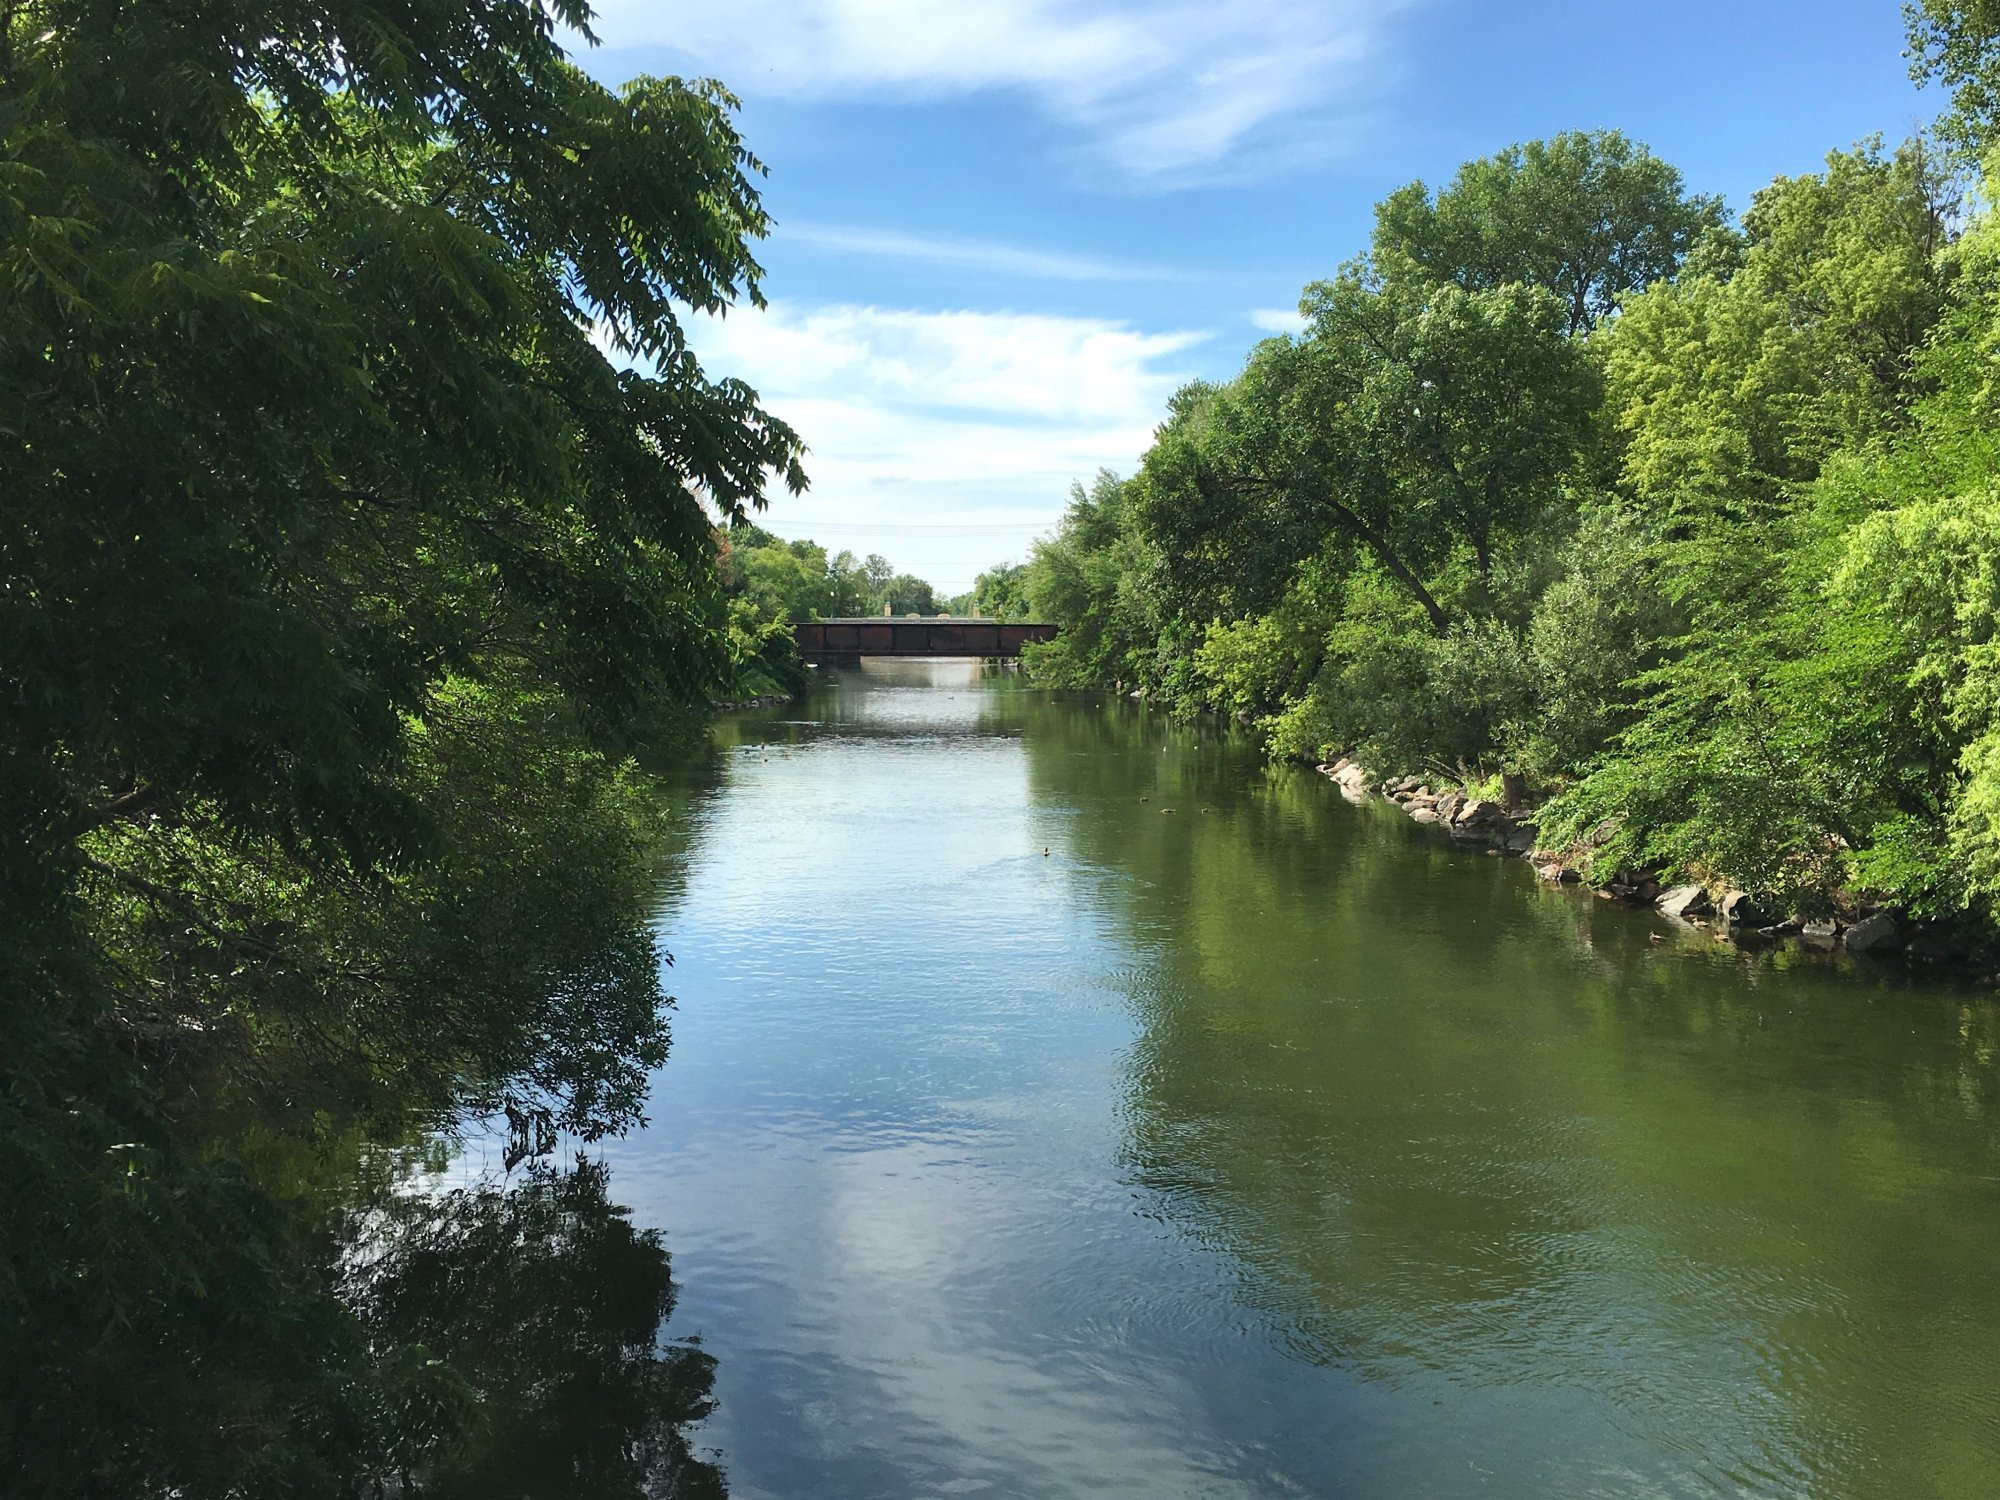 View of the Yahara River